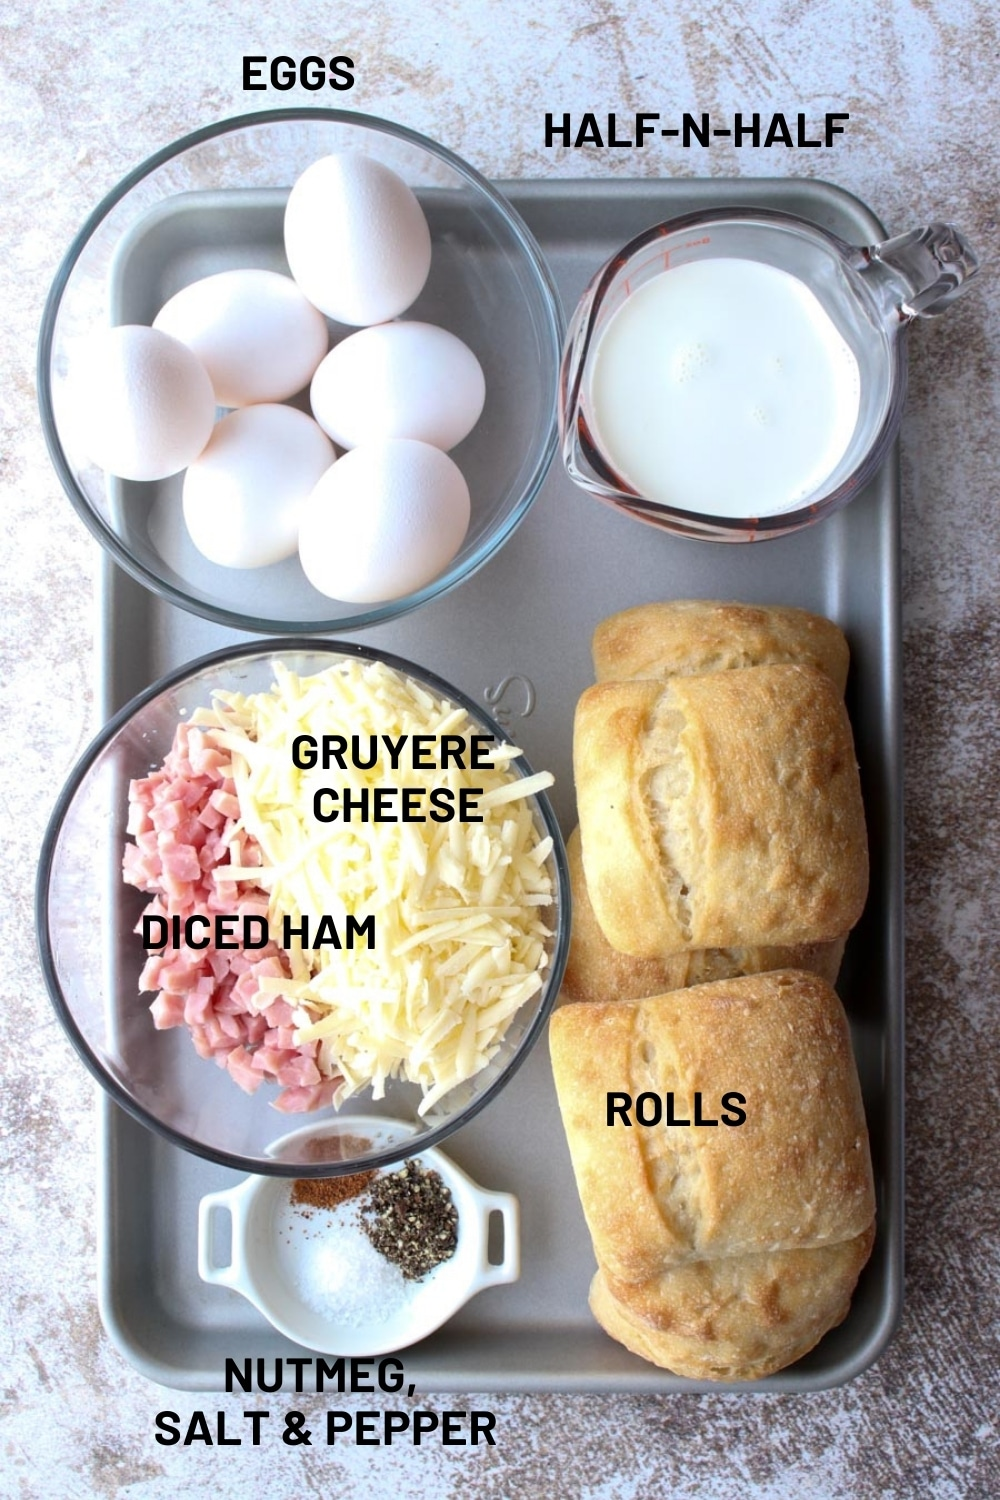 tray with uncooked ingredients to make quiche egg boats